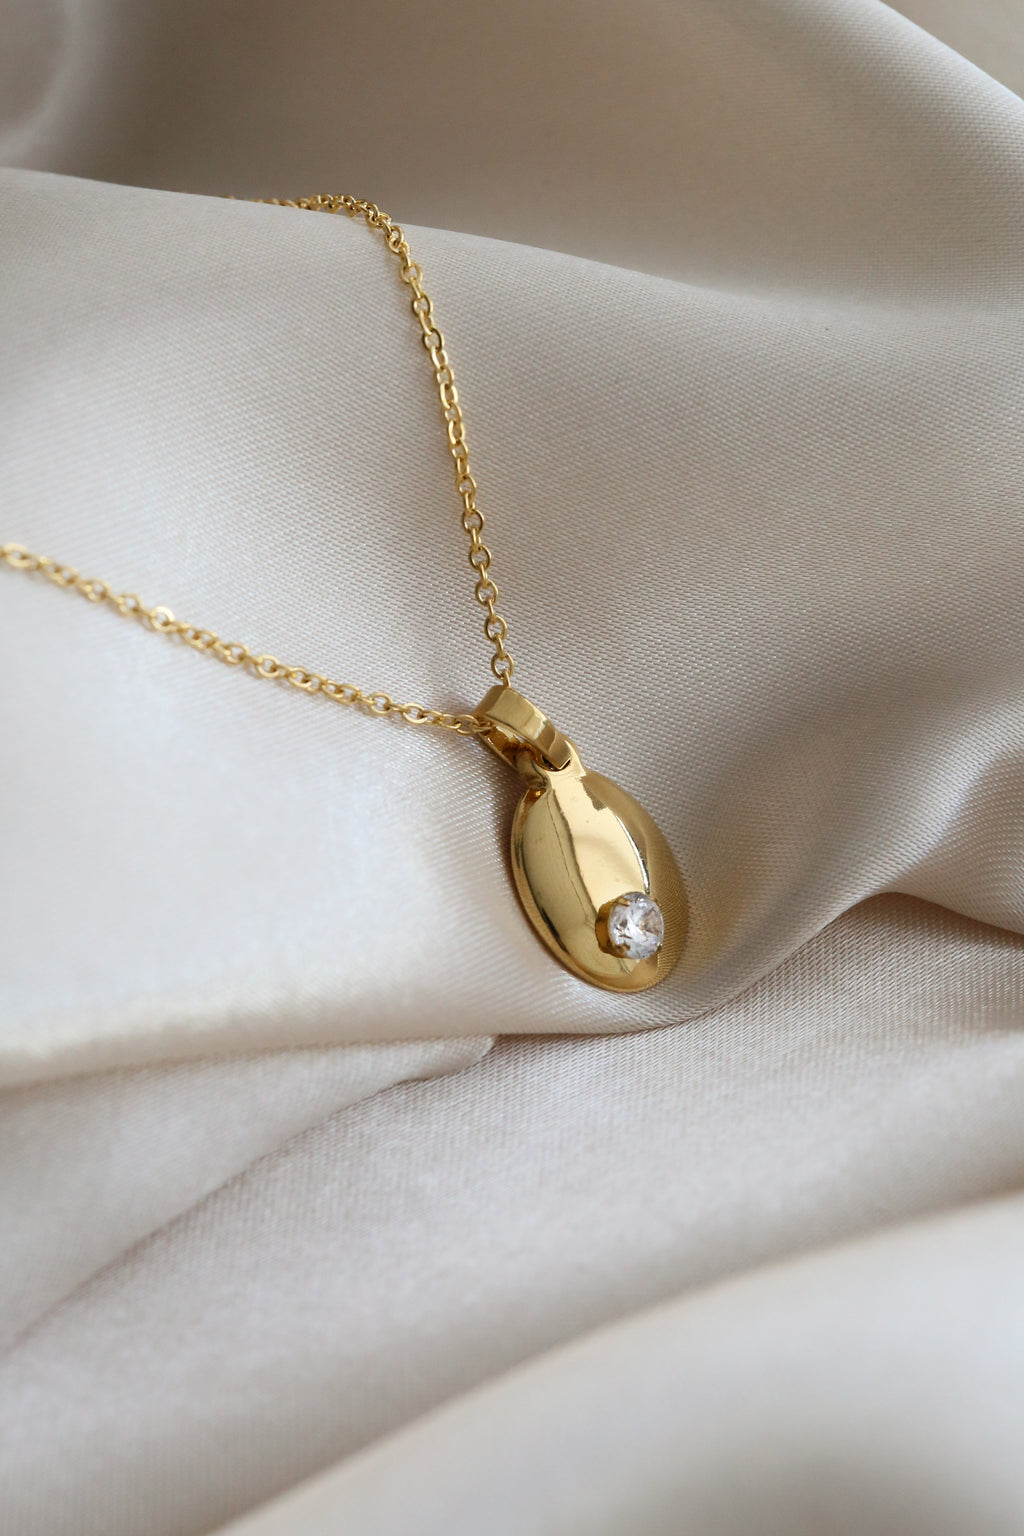 Adelaide Necklace - Boutique Minimaliste